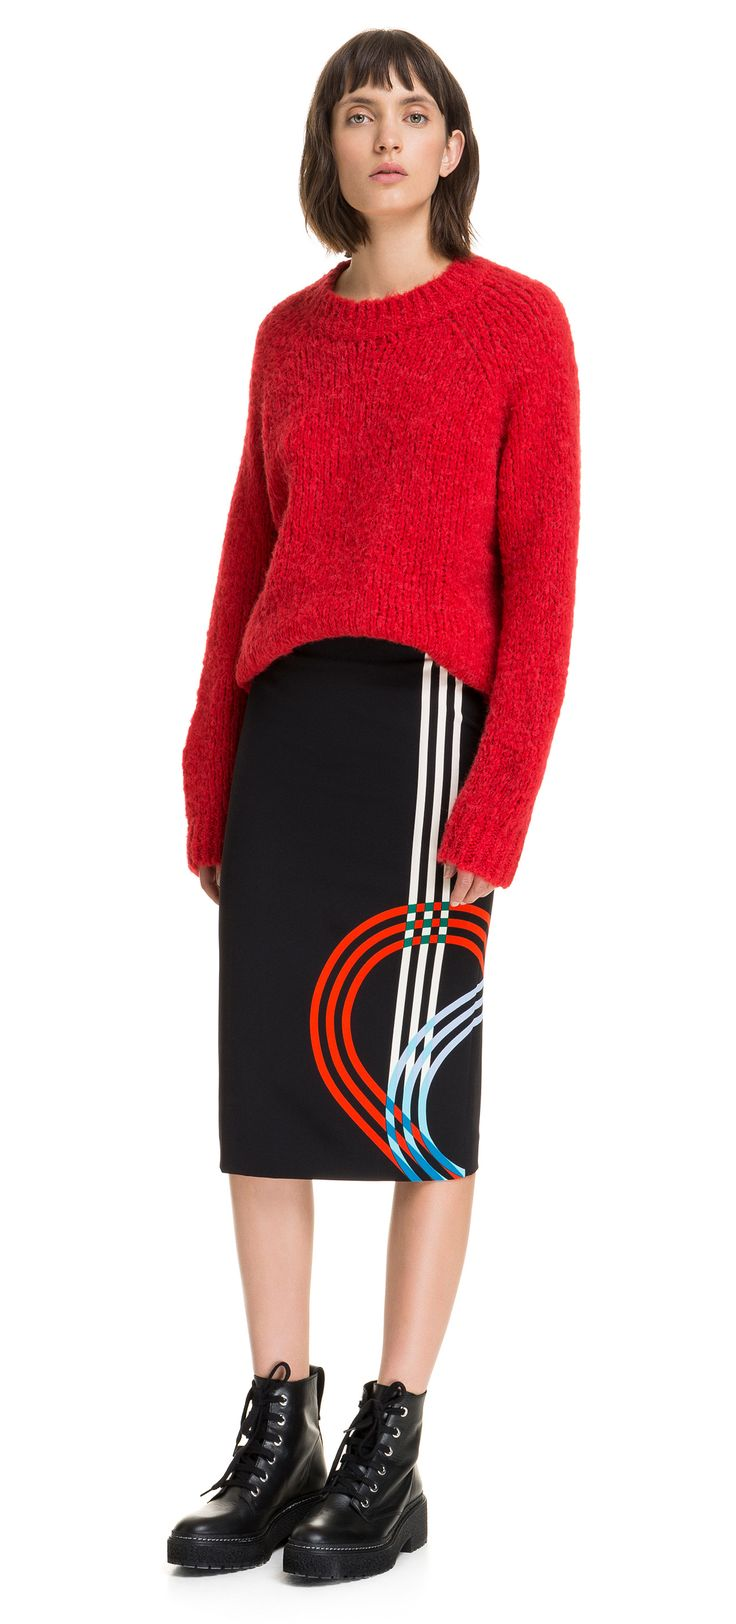 BIMBA Y LOLA pencil skirt with Circuit print against a black background. The design is inspired by F1 circuits and stands out due to its block of colour in blue, red and white.  Detail  Fitted High waist Rear zip fastener Midi length